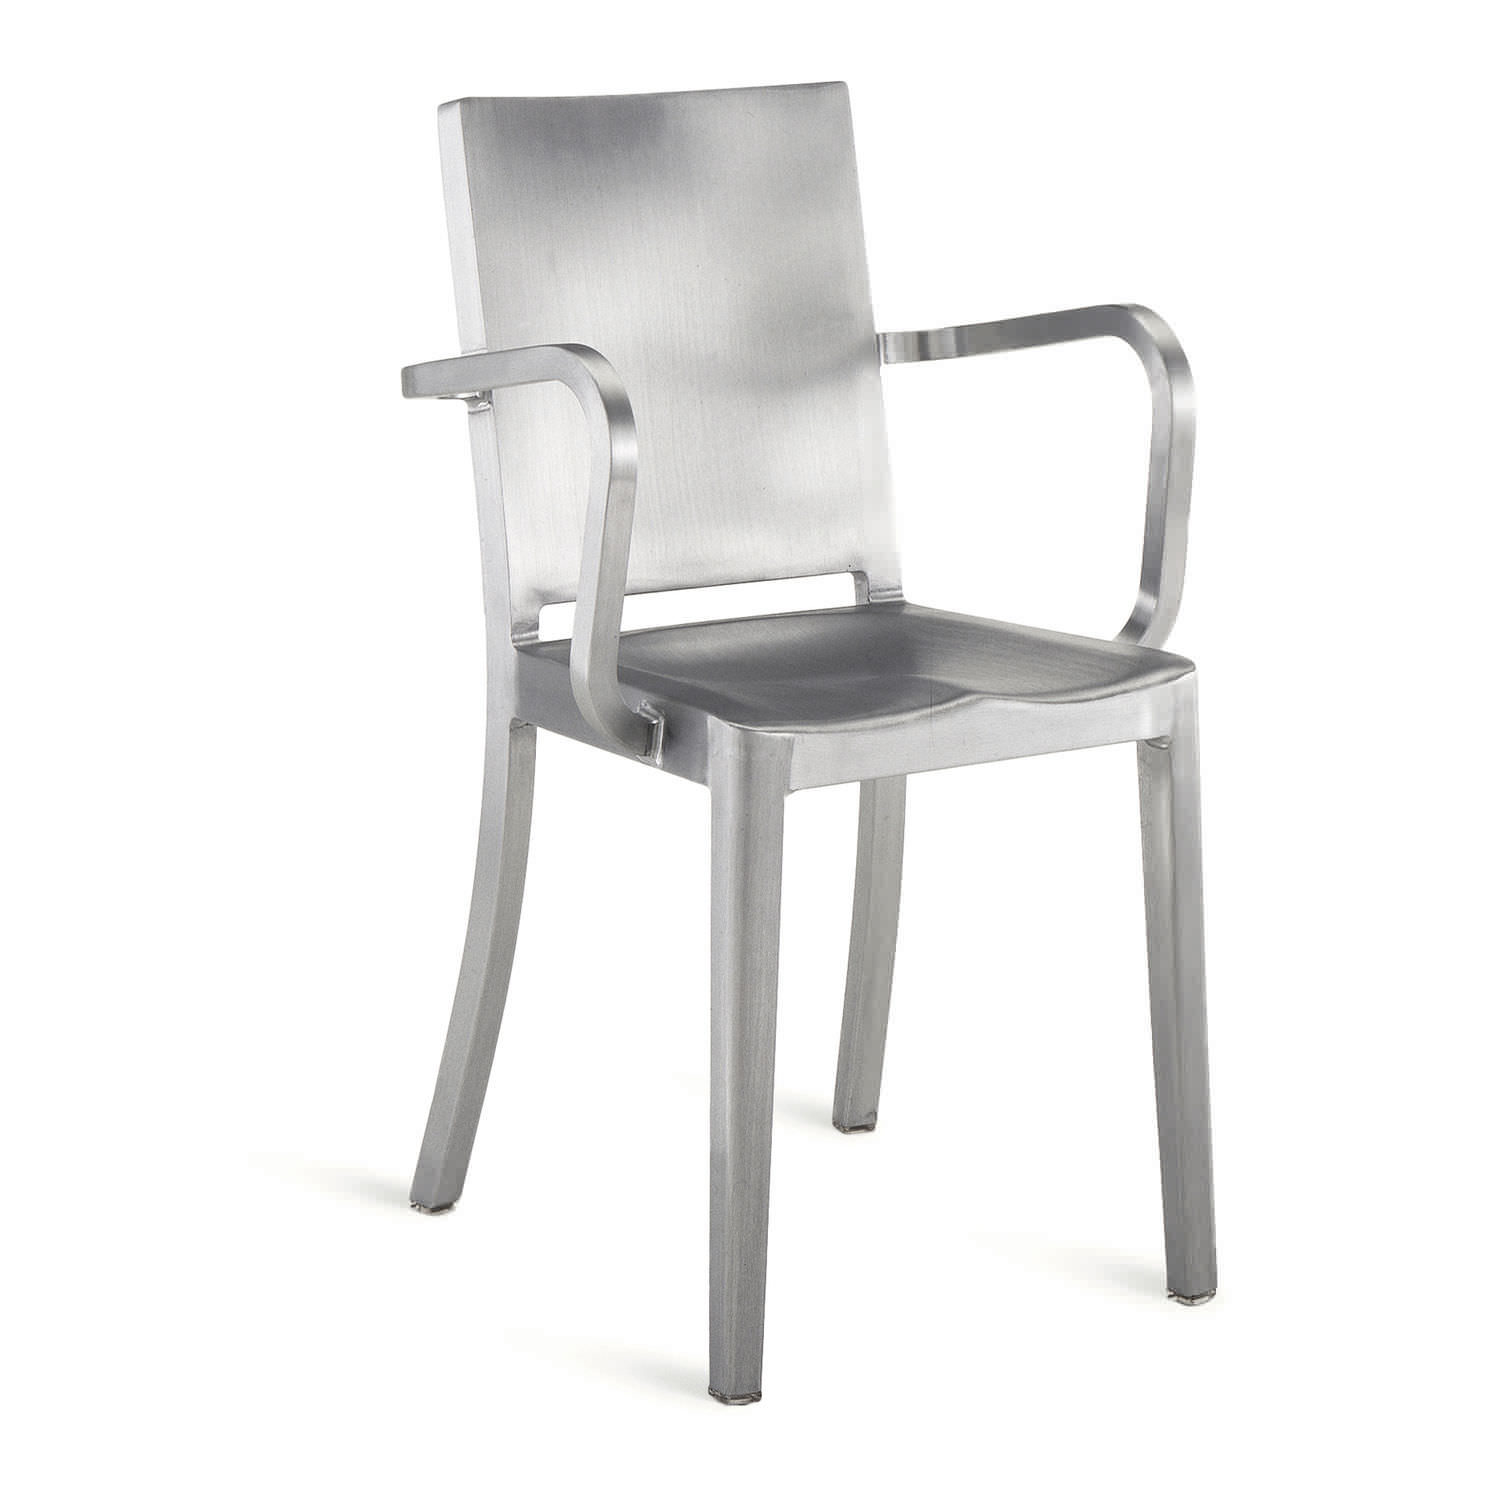 chair aluminum with armrests by philippe starck hudson hud a